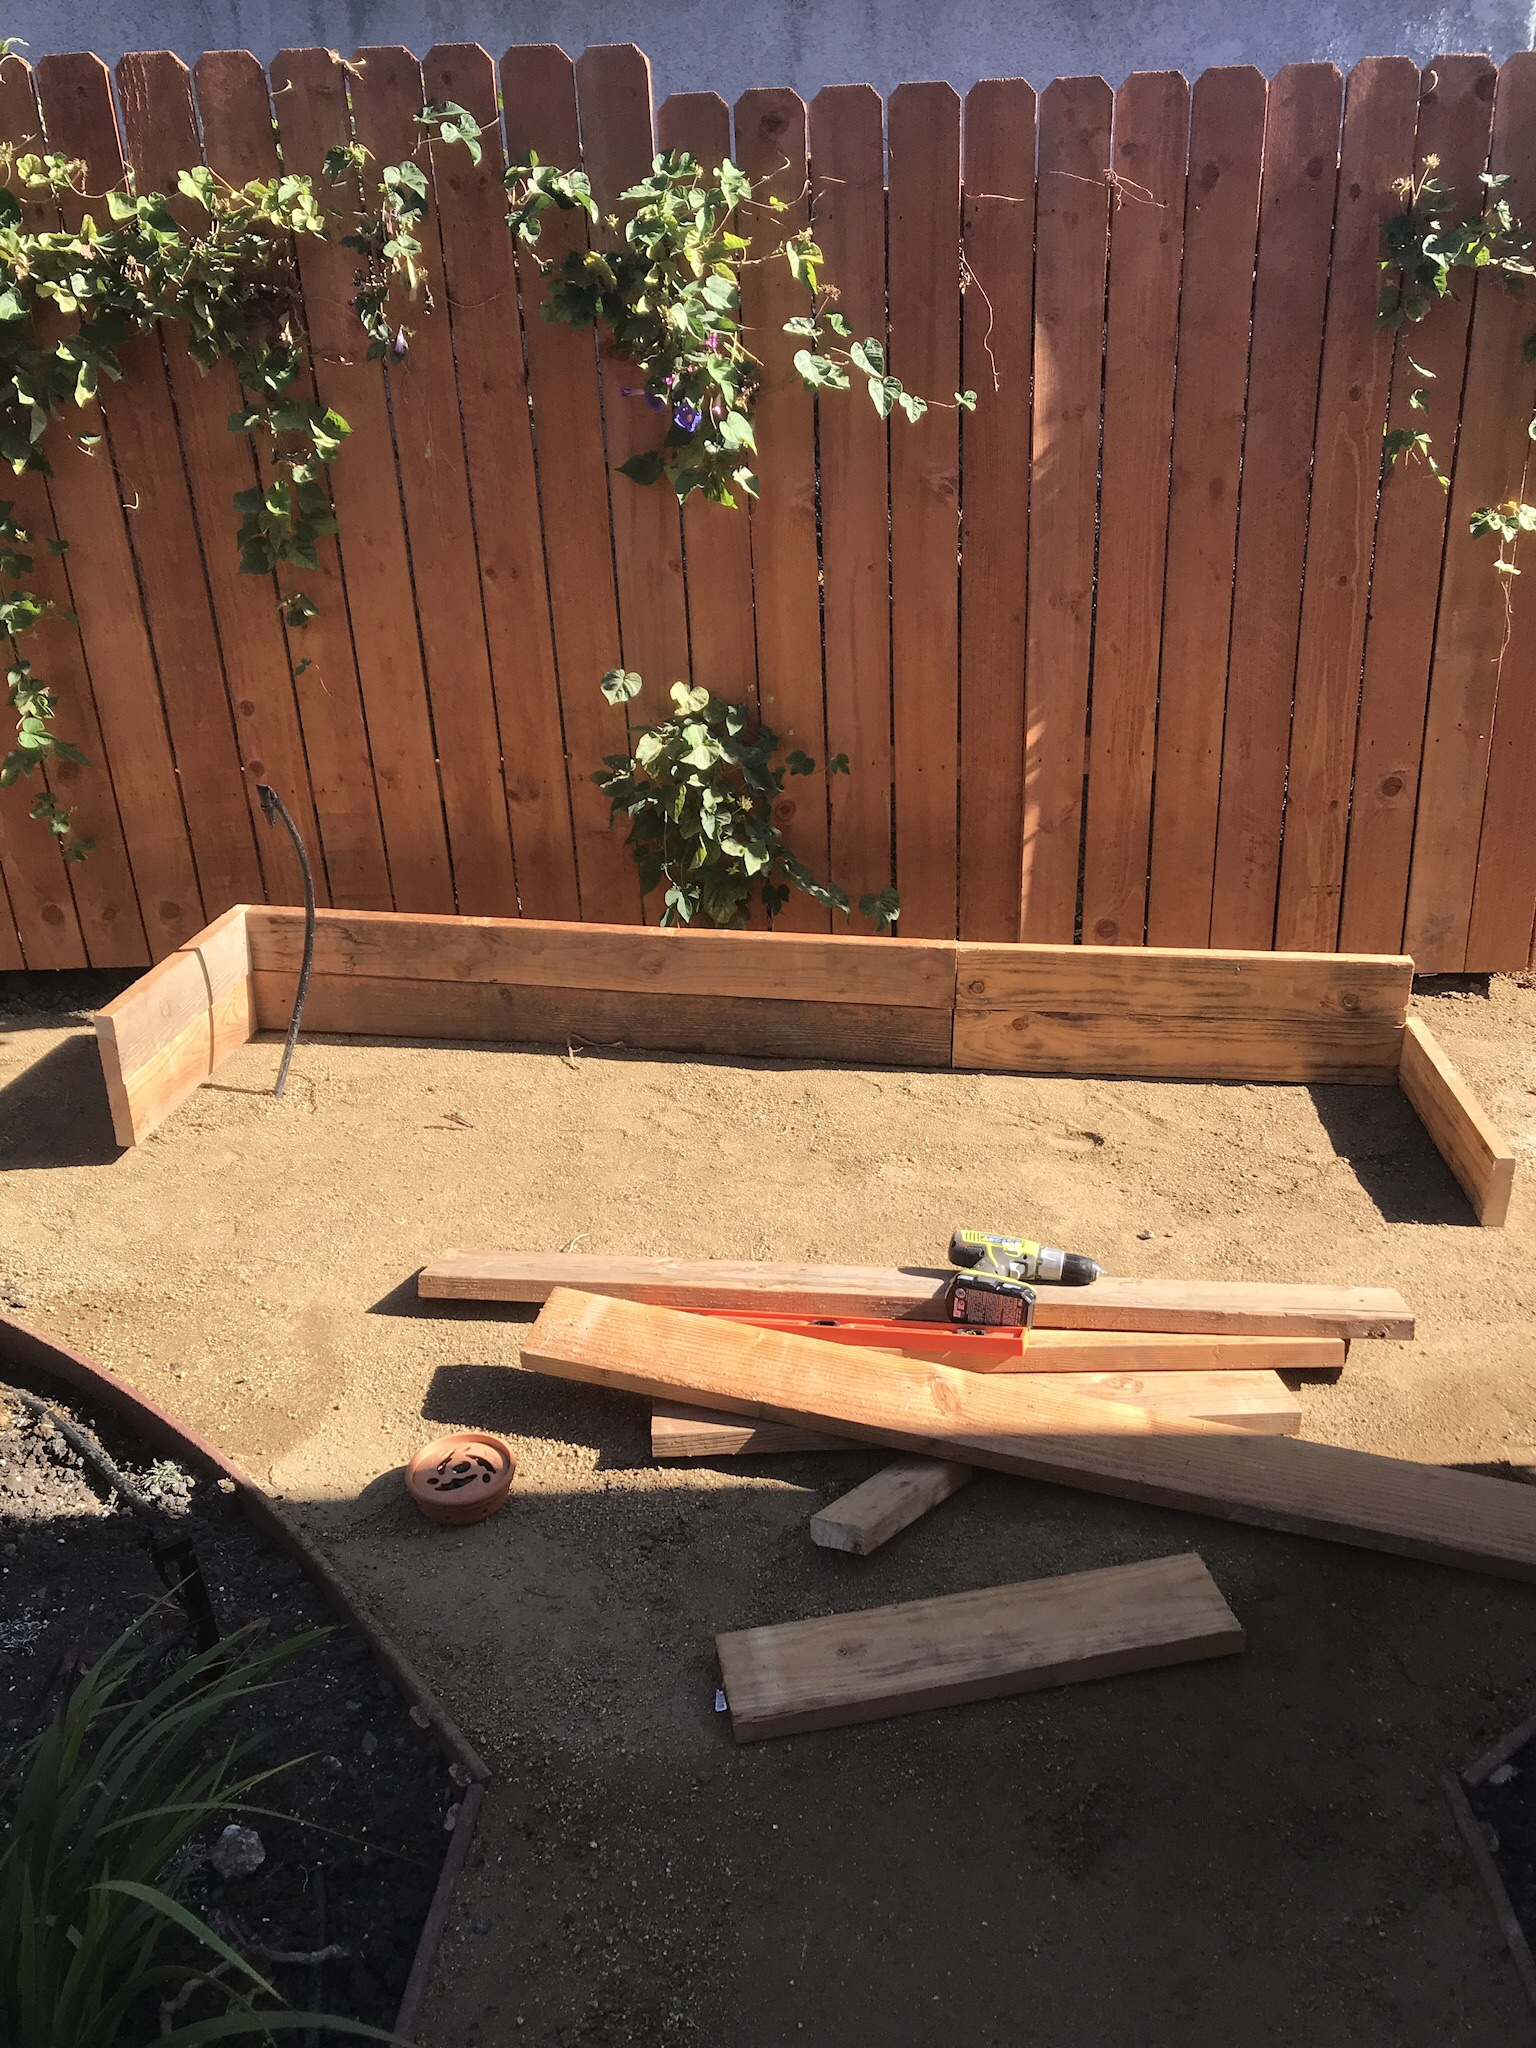 Starting your backyard farm - Nate will work directly with you to create an organic, drought tolerant and high yielding backyard urban farm..During the first visit, he will:-Assess the suitability of prospective garden site-Determine the best crops to cultivate taking into account sun exposure and grower skill level.-Discuss irrigation options.